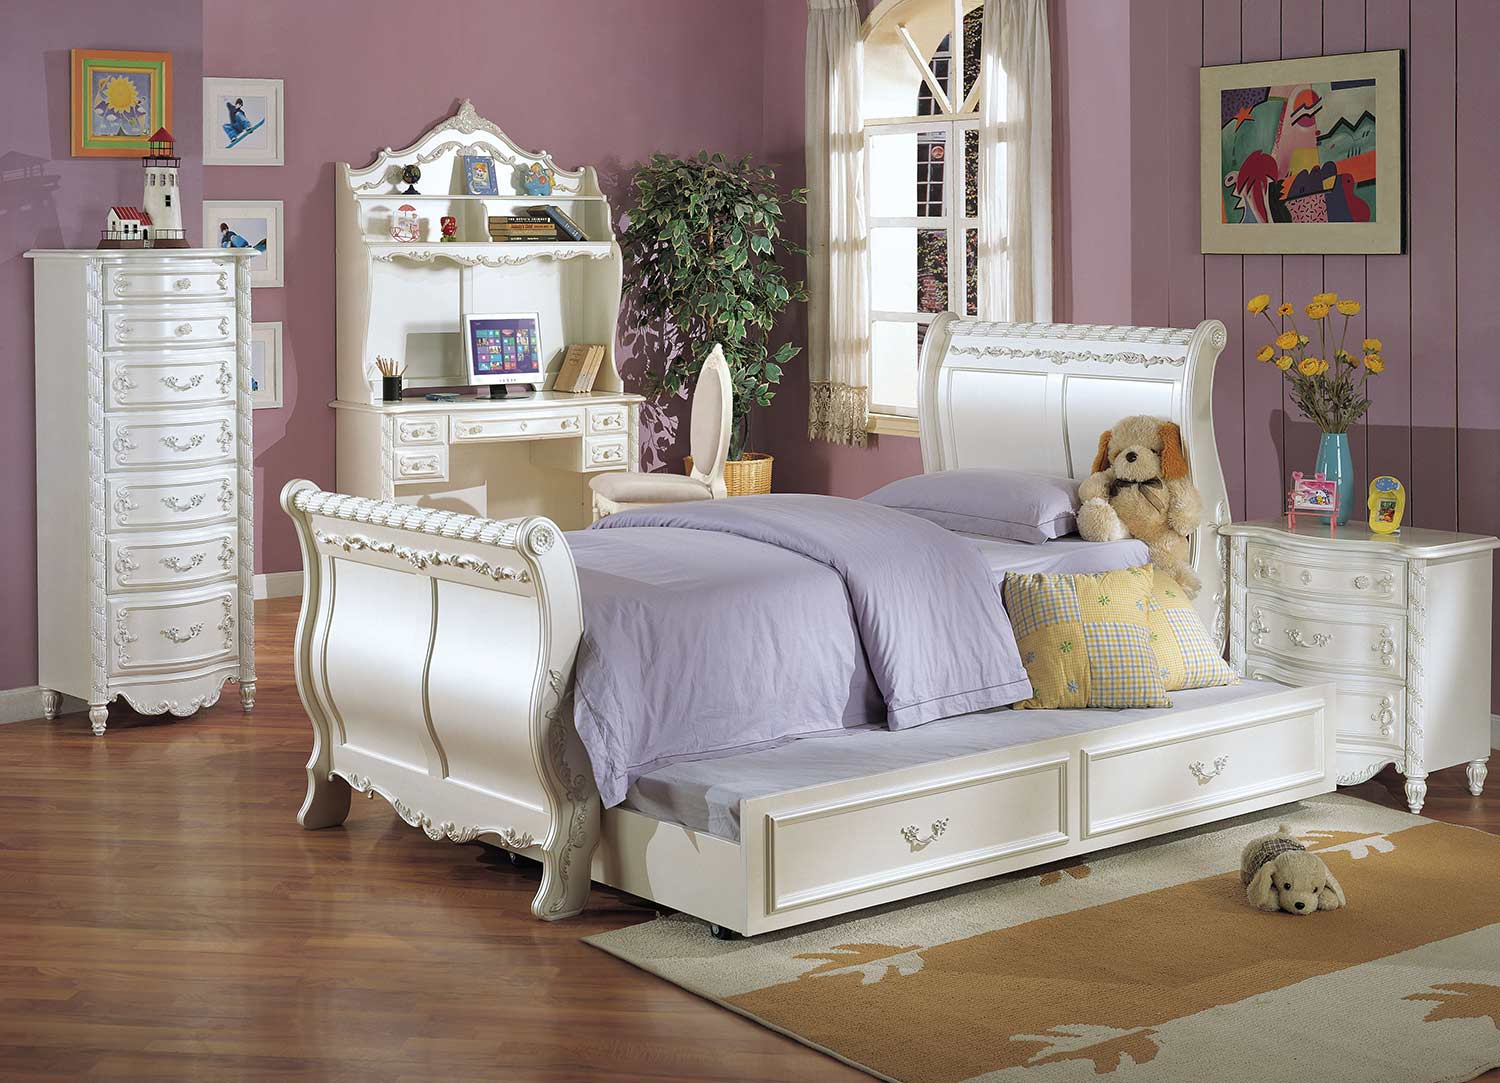 Acme Pearl Bedroom Set (Sleigh) - Pearl White/Gold Brush Accent